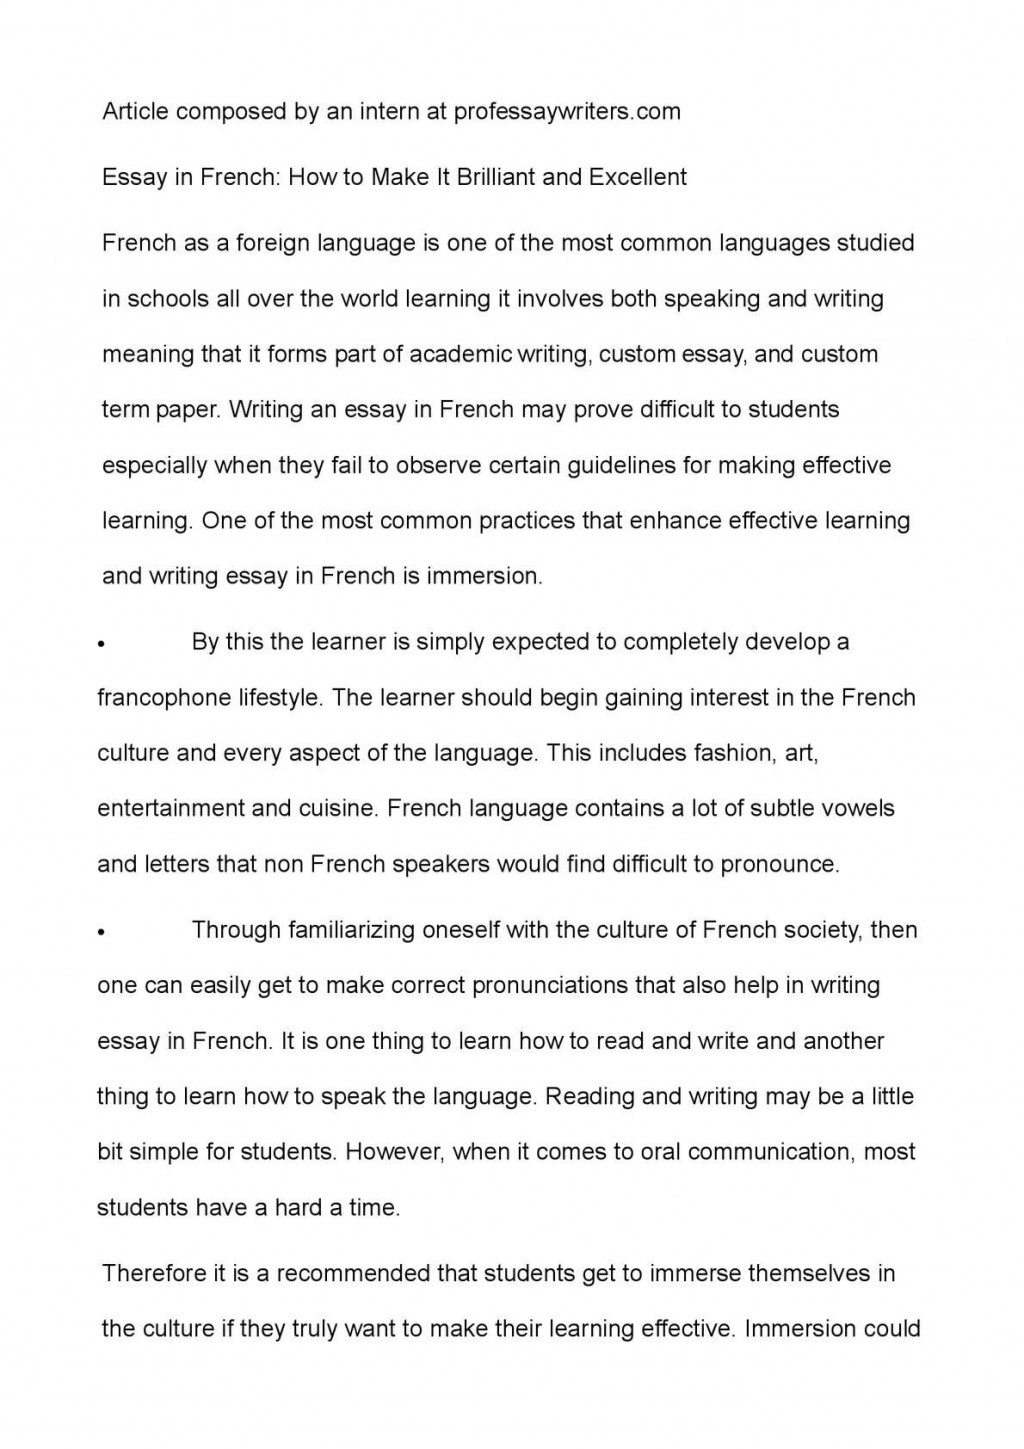 003 Essay Example In French Frightening Small On My Family Writing Language About Myself Large